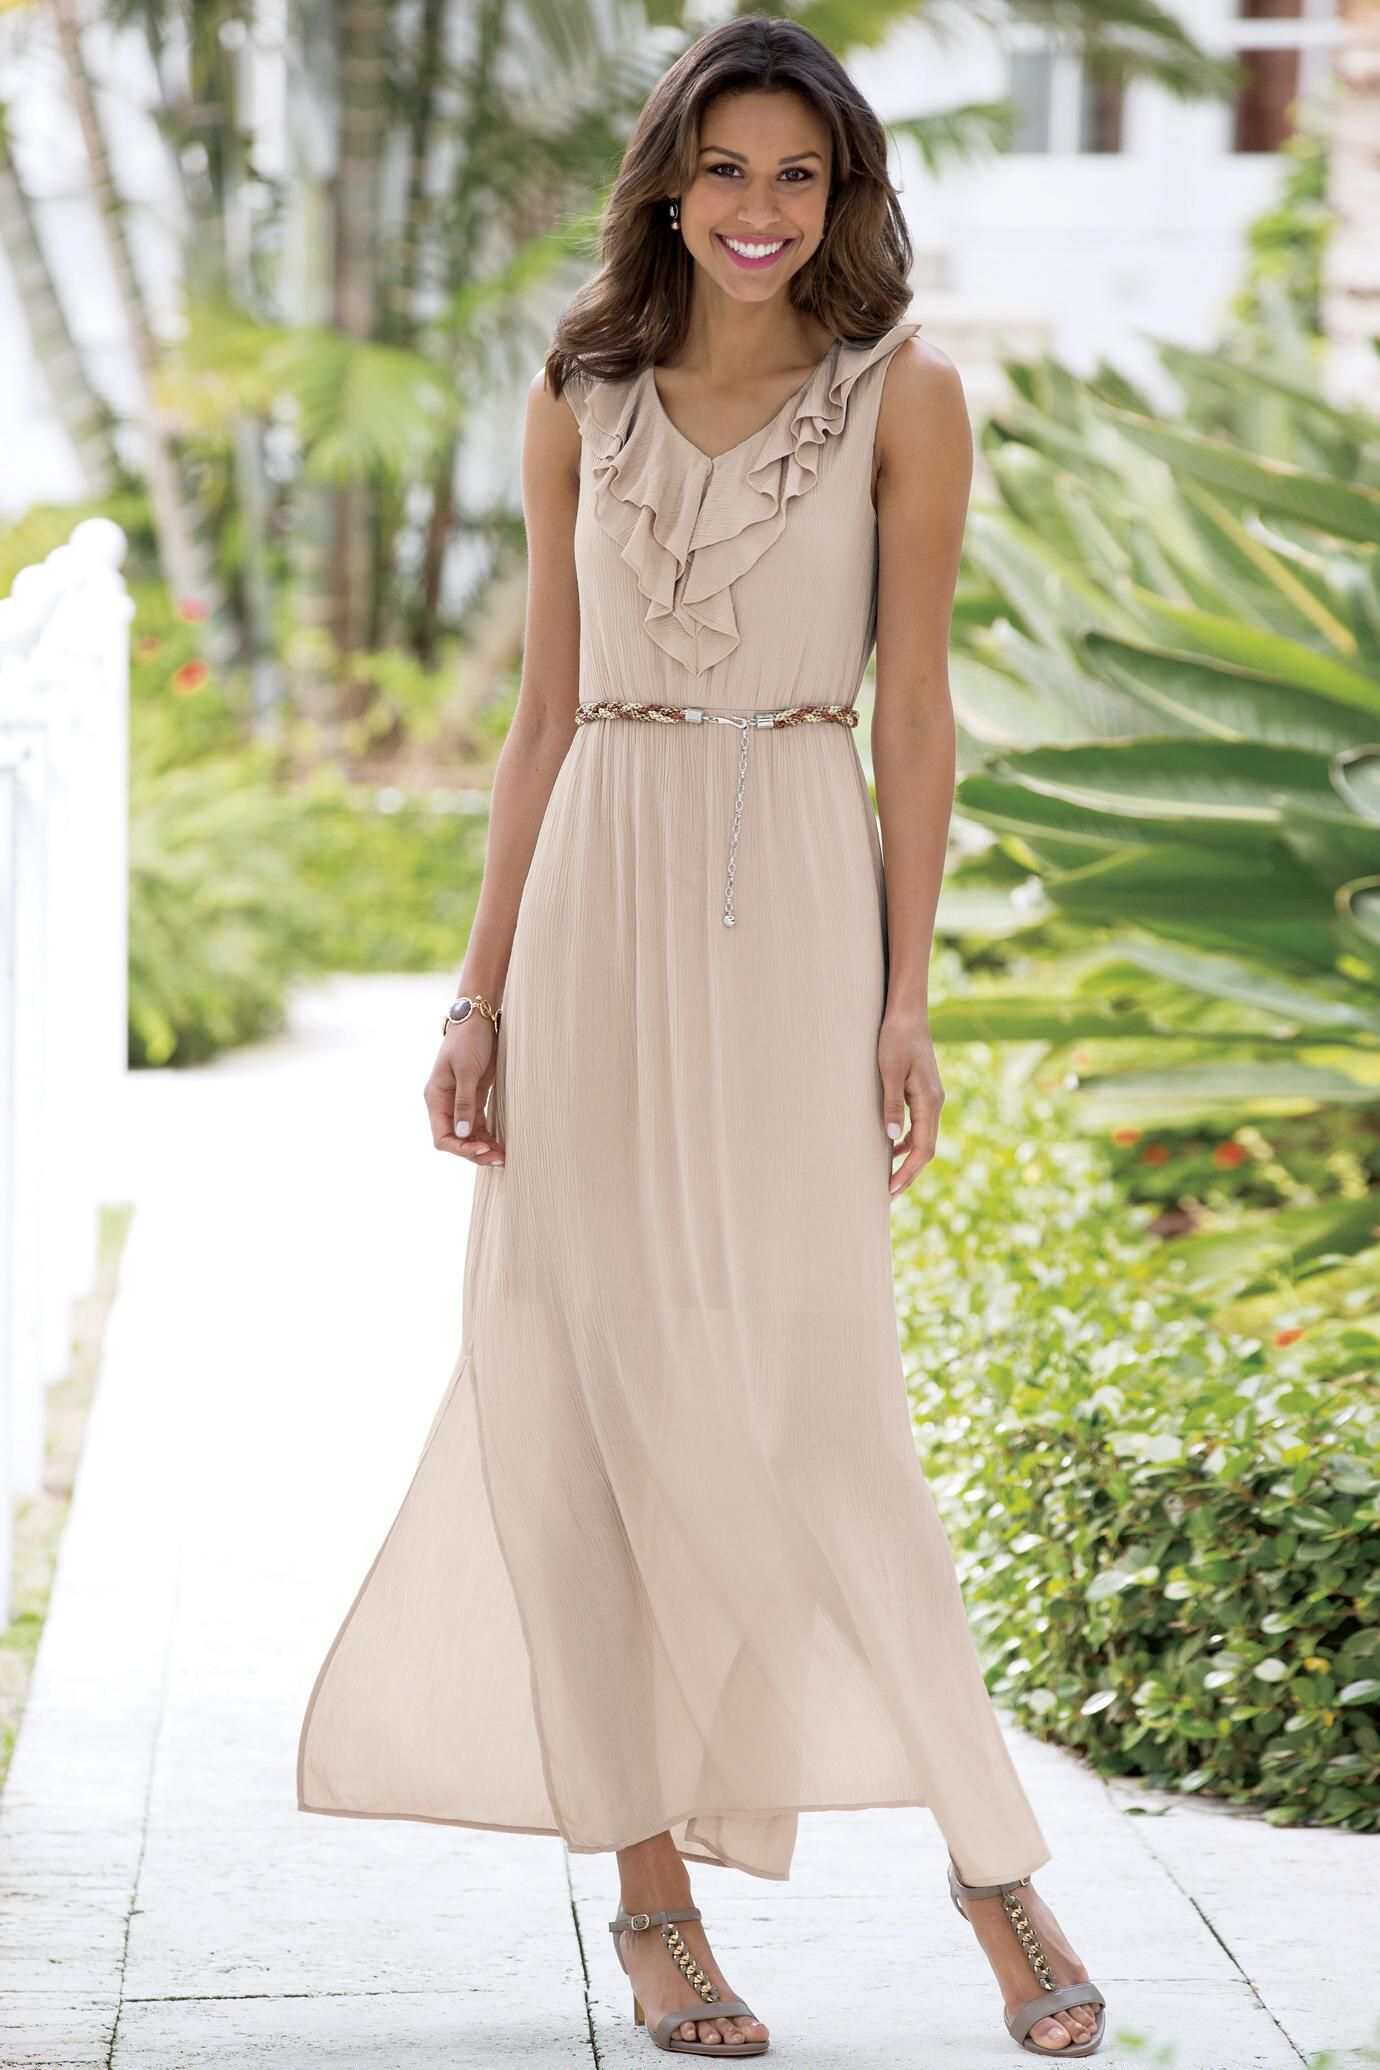 Design history maxi dress with rosette trim built-in